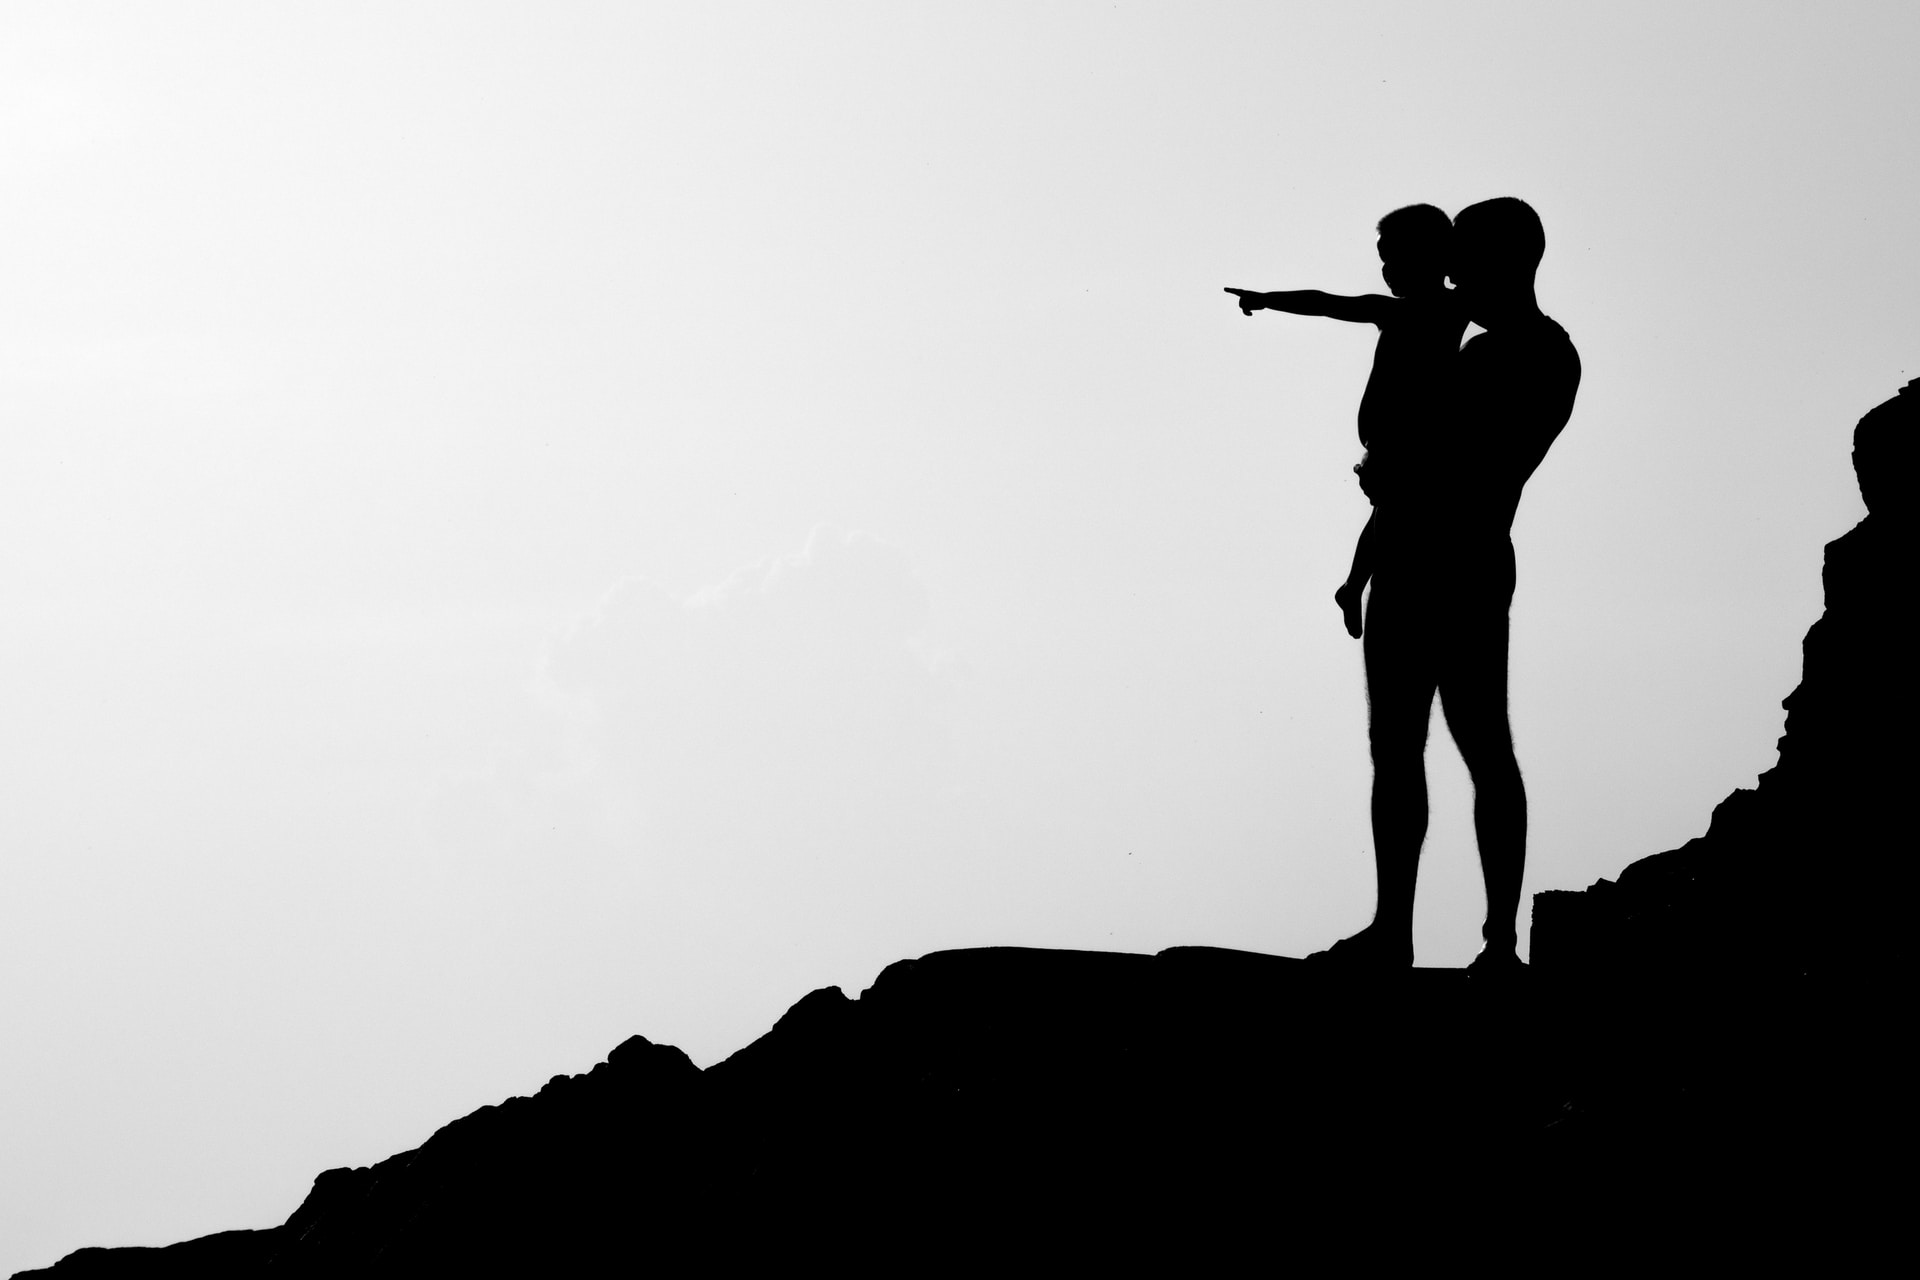 silhouette of man carrying child